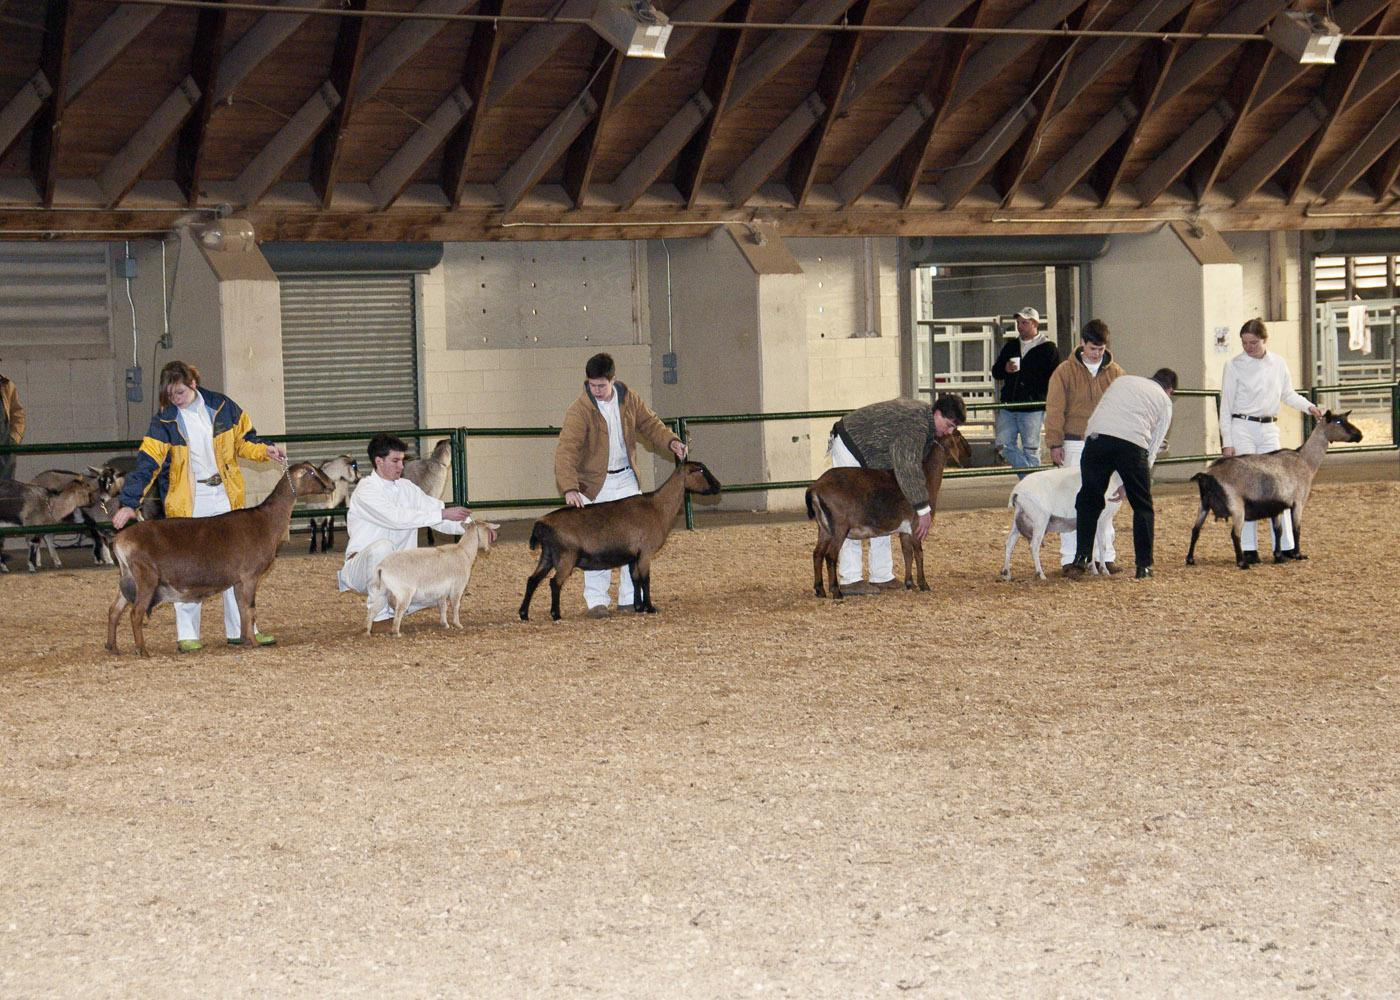 4-H'ers are increasingly choosing to show goats because of the animals' small size and gentle behavior. (Photo by Scott Corey)